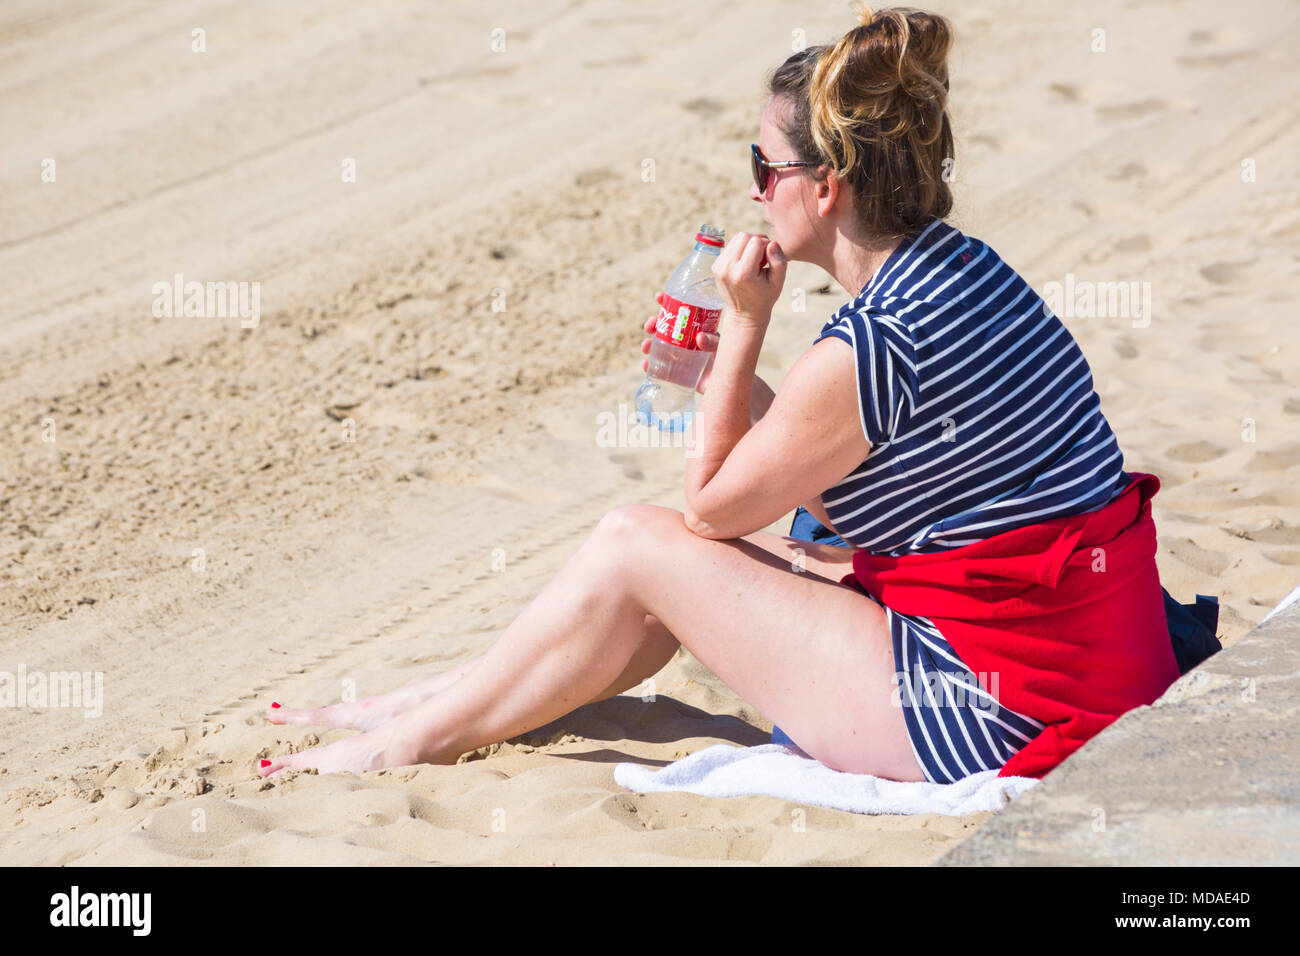 Bournemouth, Dorset, UK. 19th April 2018. UK weather: lovely warm sunny day at Bournemouth beaches with clear blue skies and unbroken sunshine, as visitors head to the seaside to enjoy the warmest day of the year so far. Young woman sitting on beach holding empty Coca-Cola bottle. Credit: Carolyn Jenkins/Alamy Live News Stock Photo